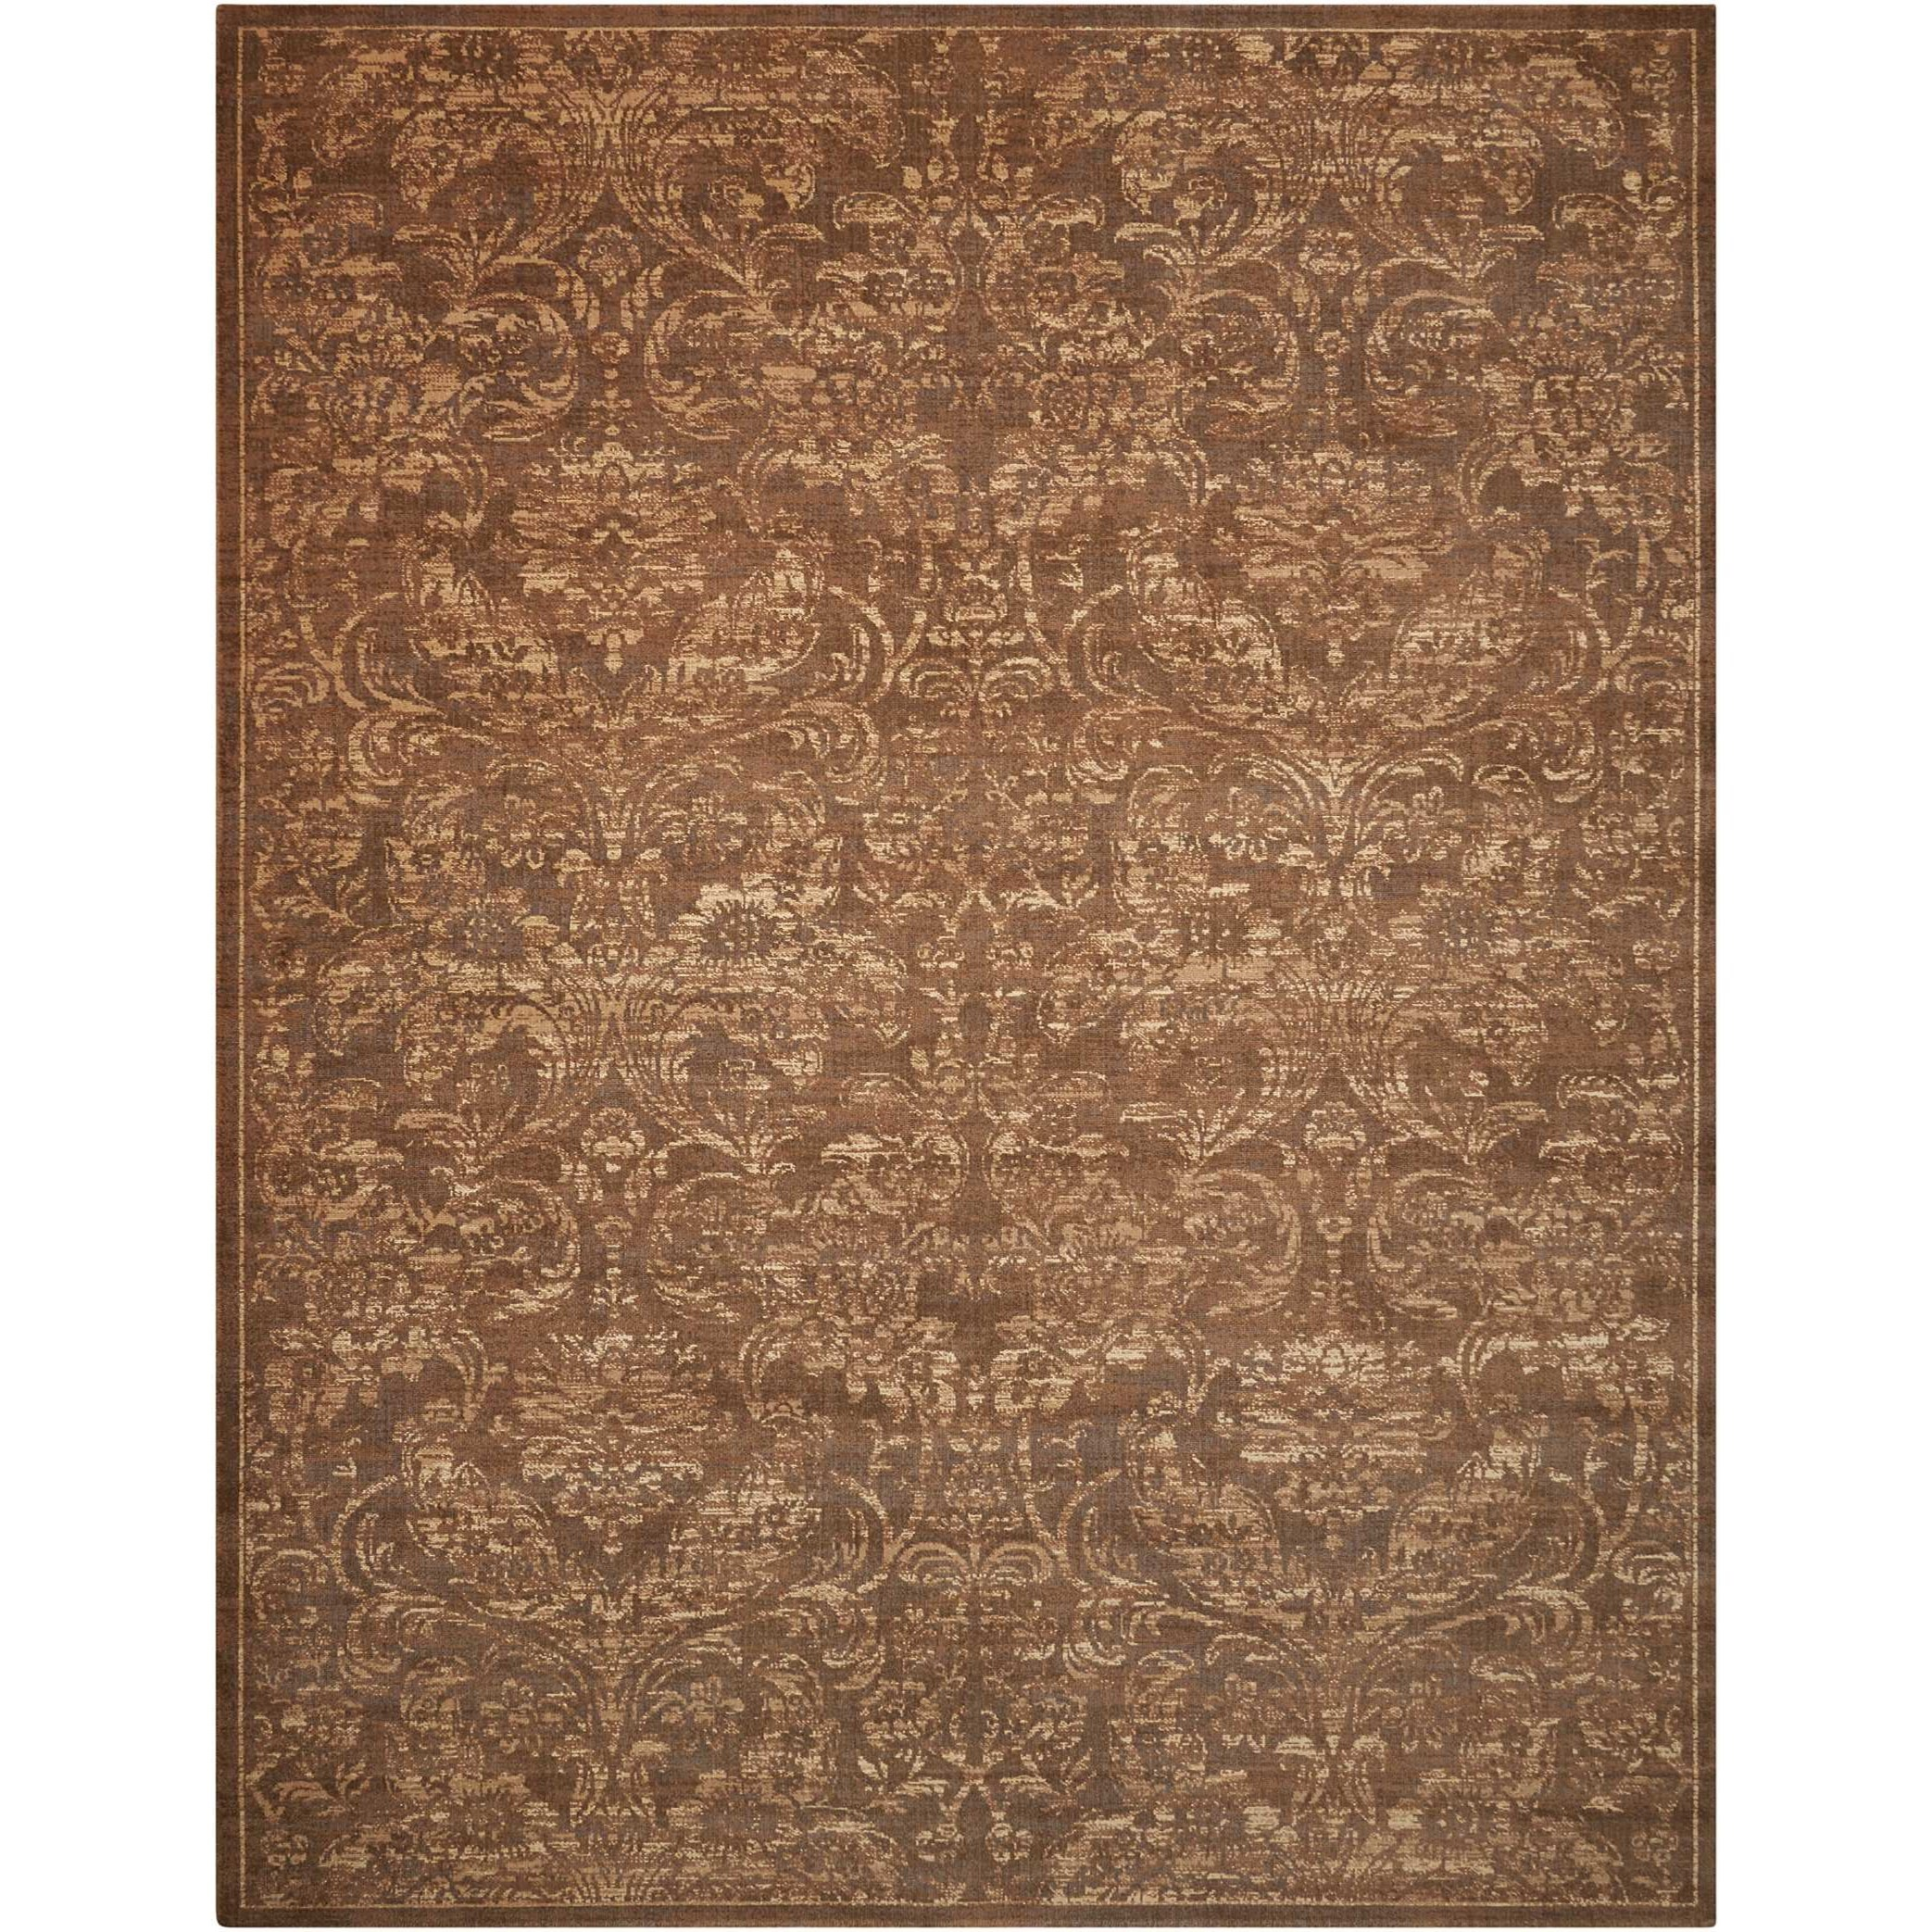 "Silken Allure 7'9"" x 9'9"" Chocolate Rectangle Rug by Nourison at Home Collections Furniture"